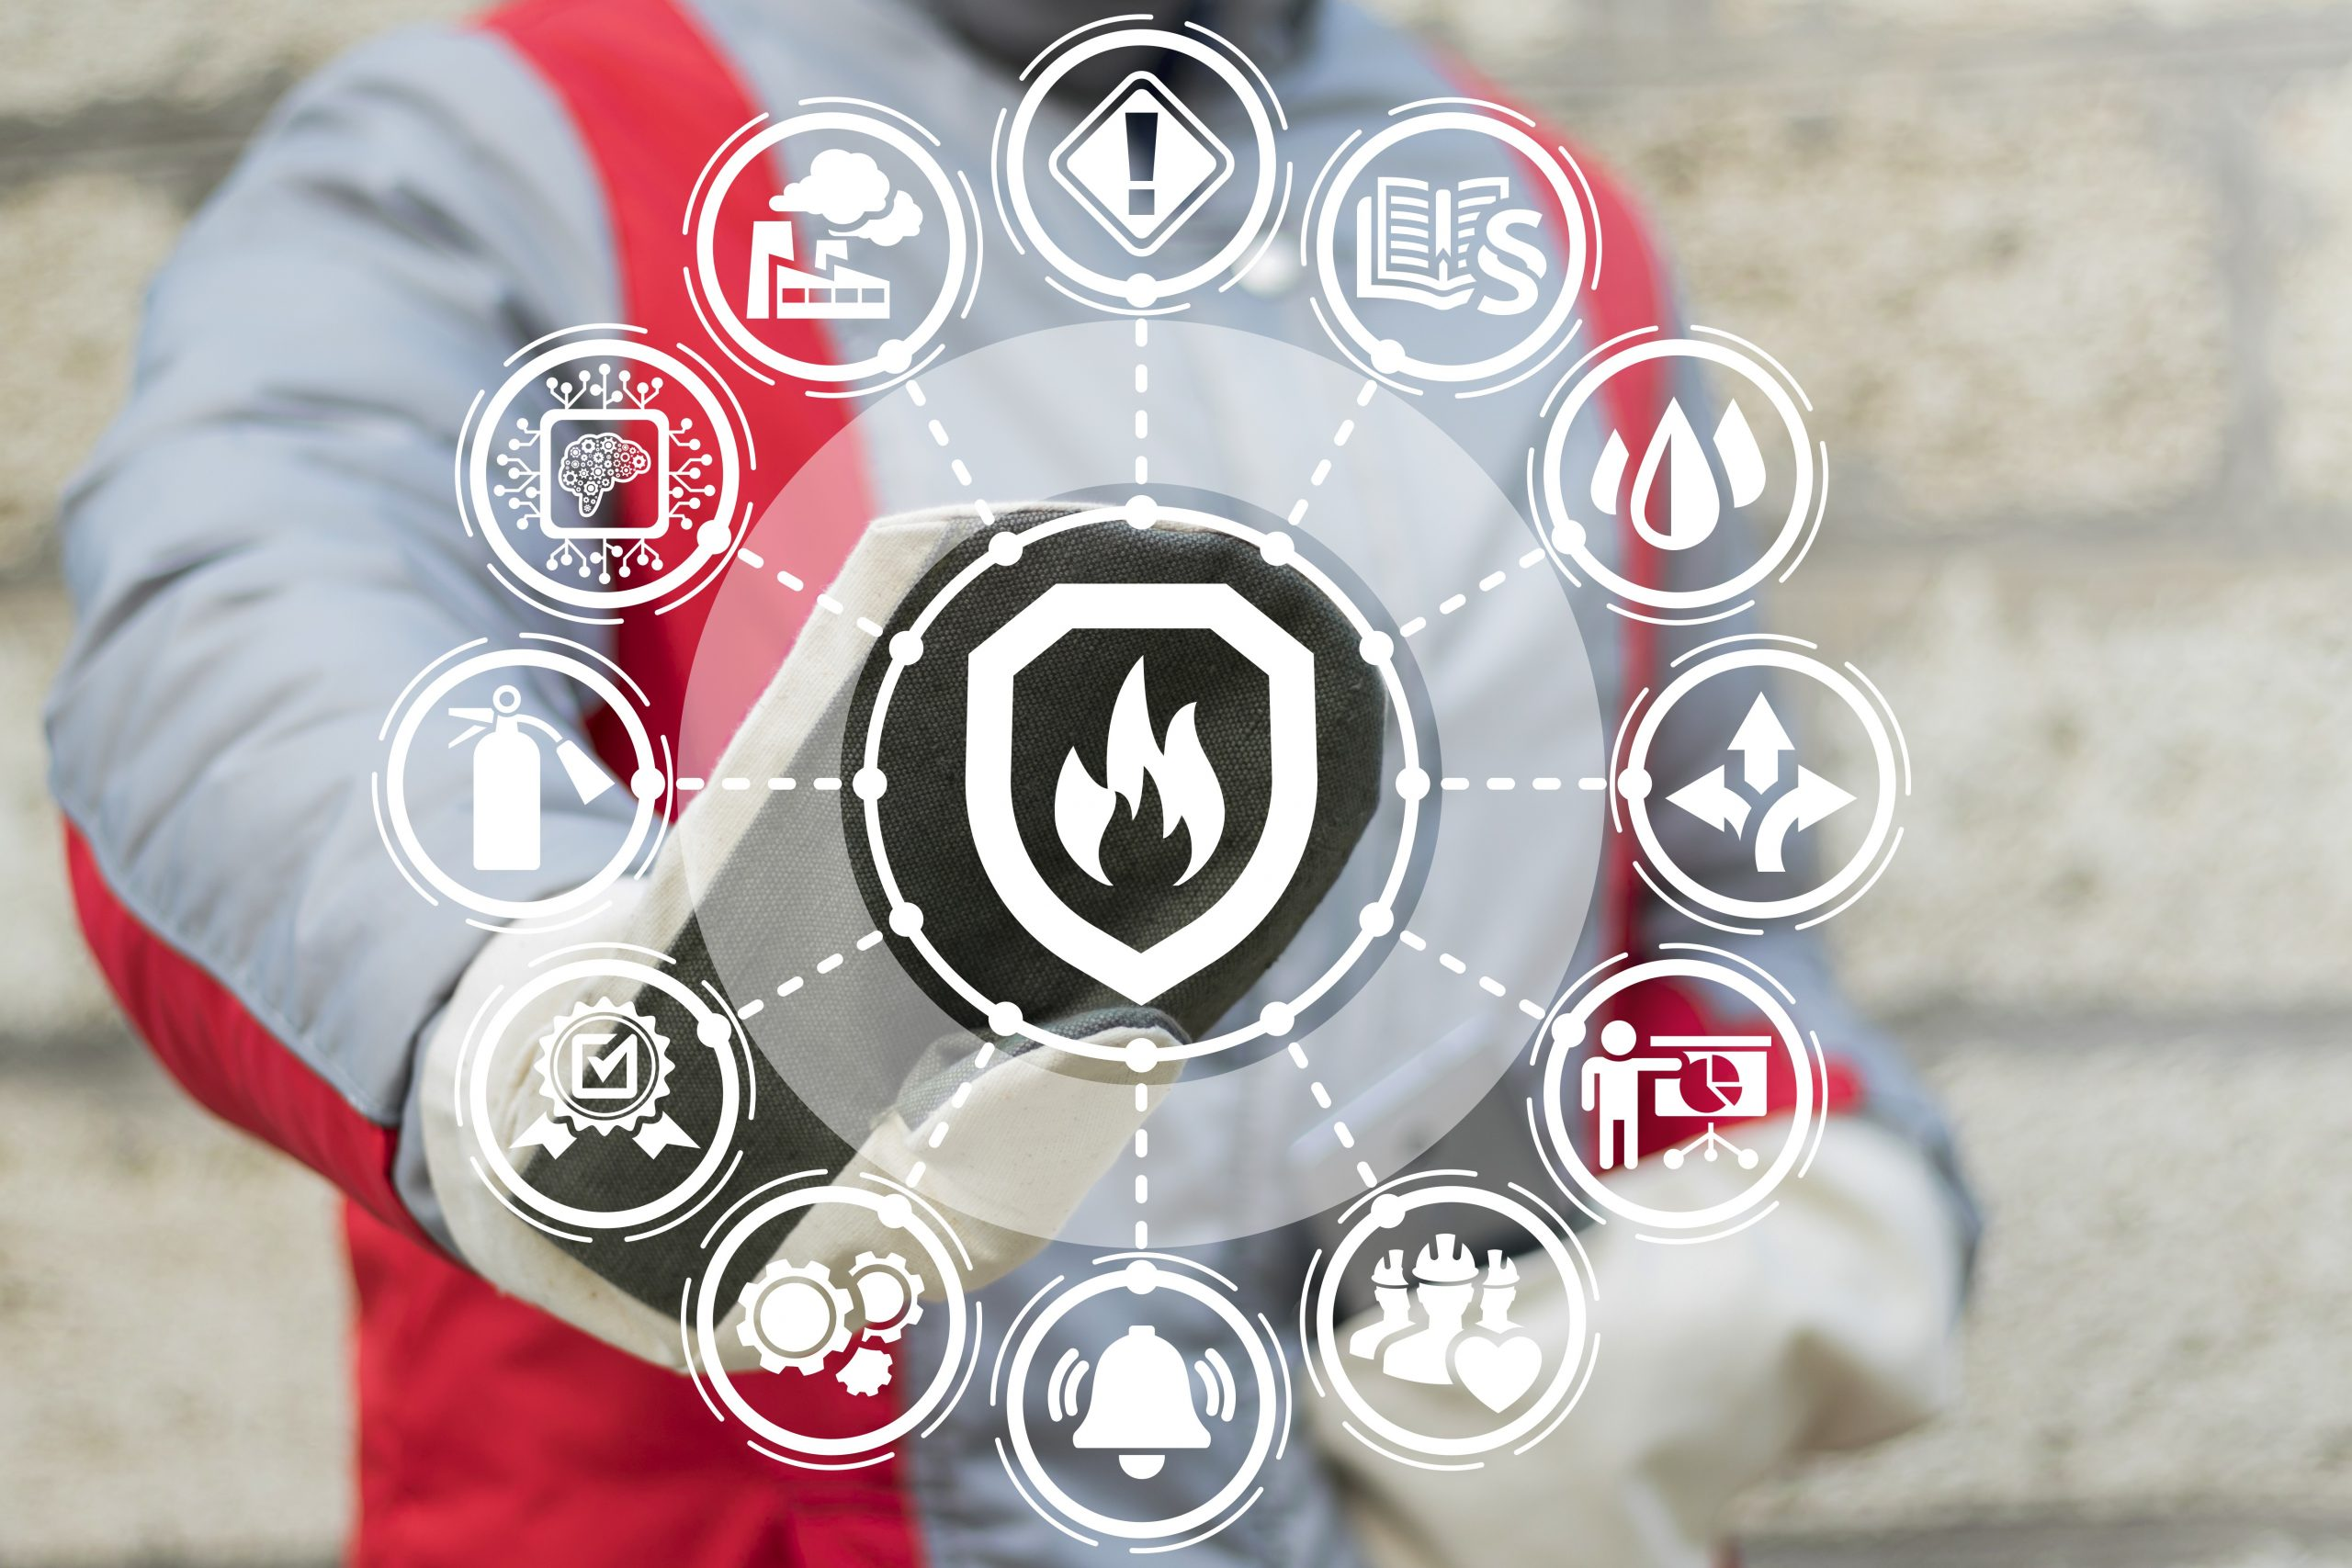 How Can Technology Better Assist Fire Rescue?